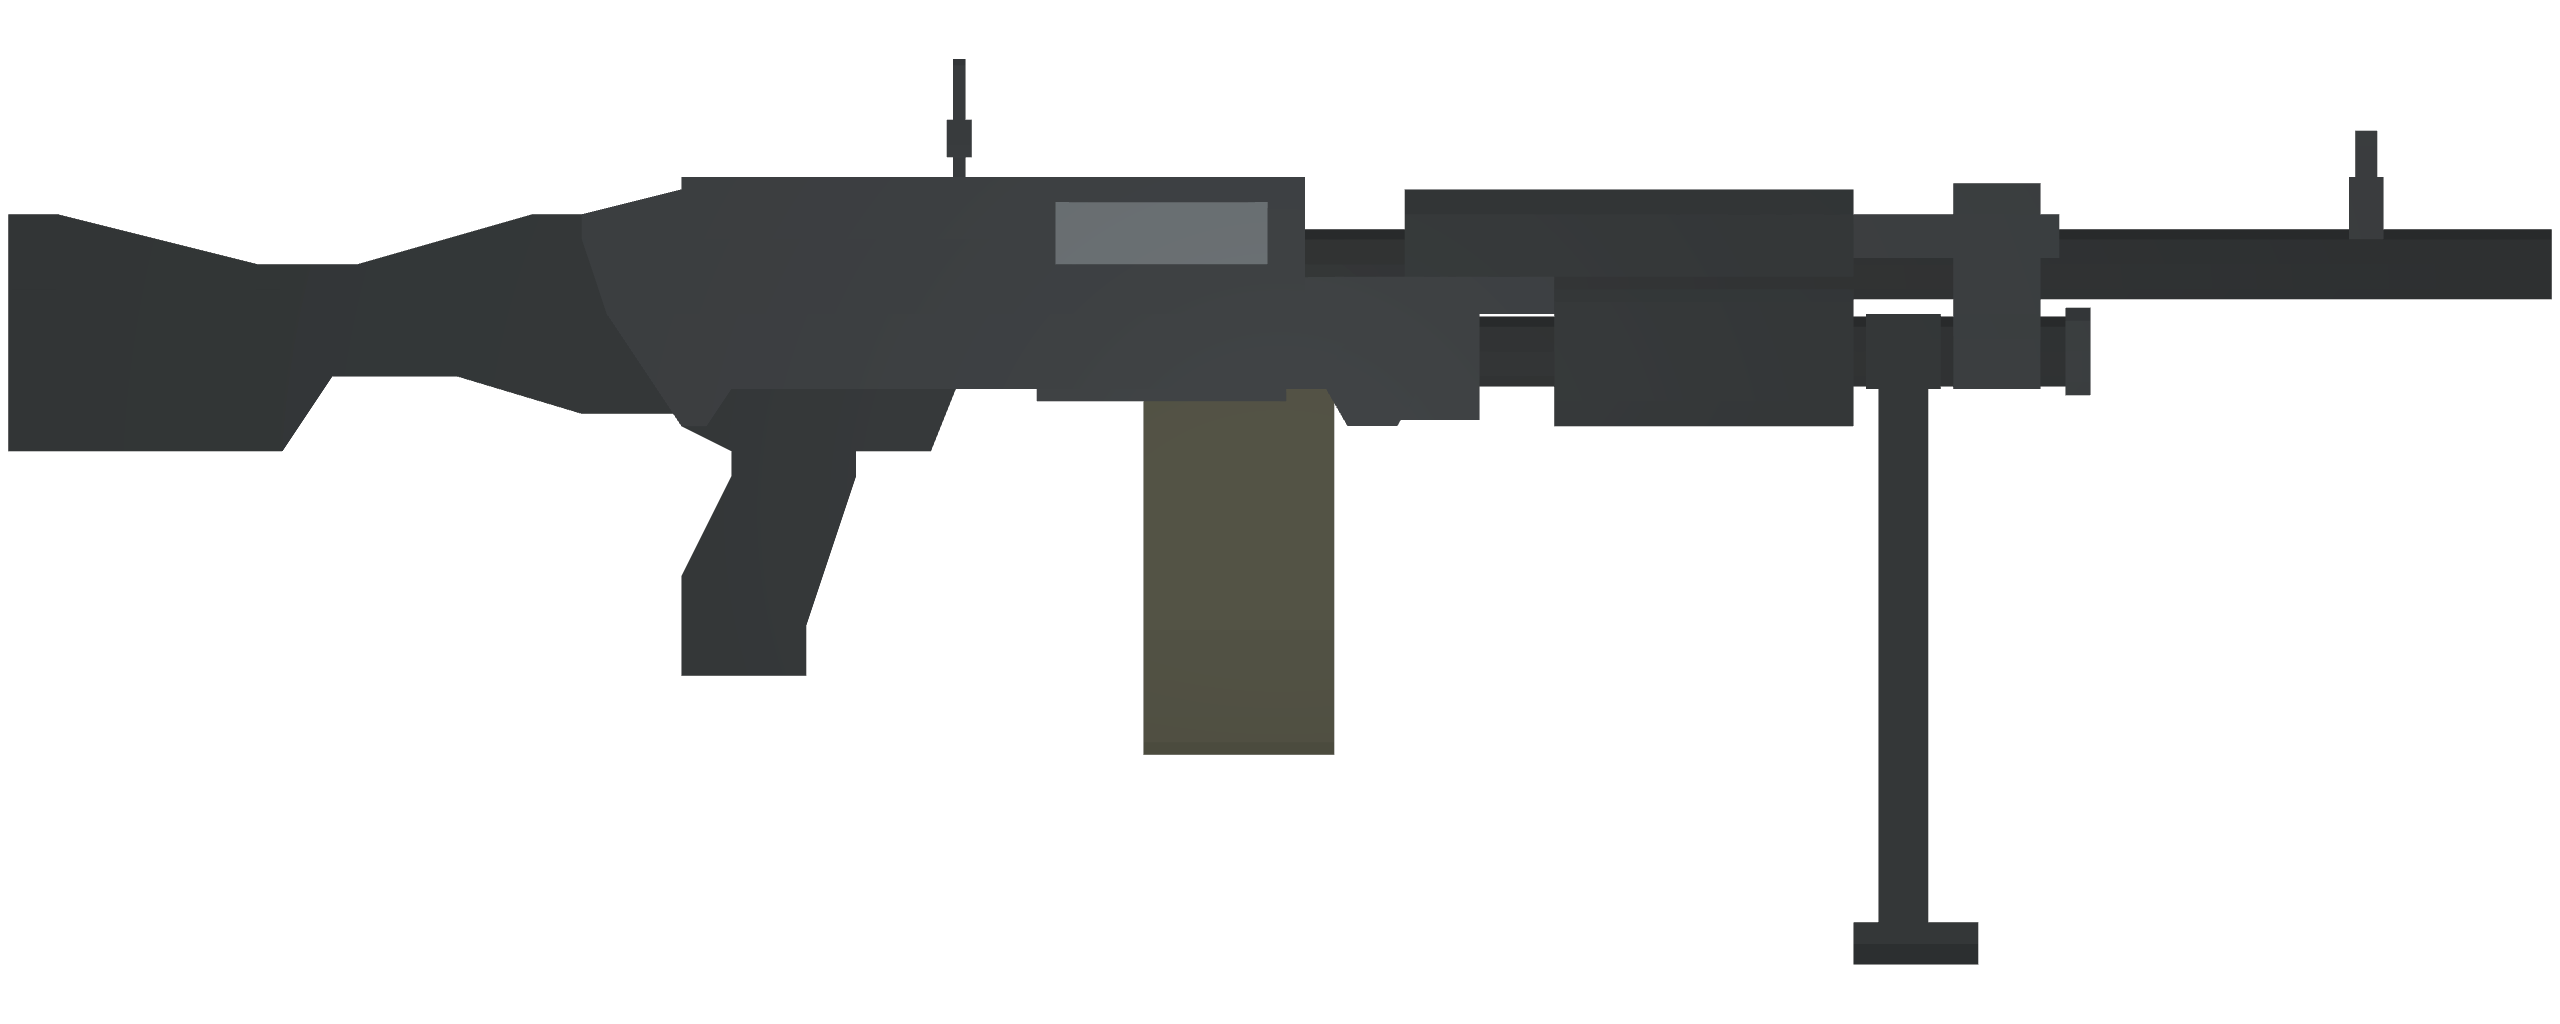 Unturned - All Weapons ID's for Uncreated Warfare Mods - USA Weapons - 8EC470E